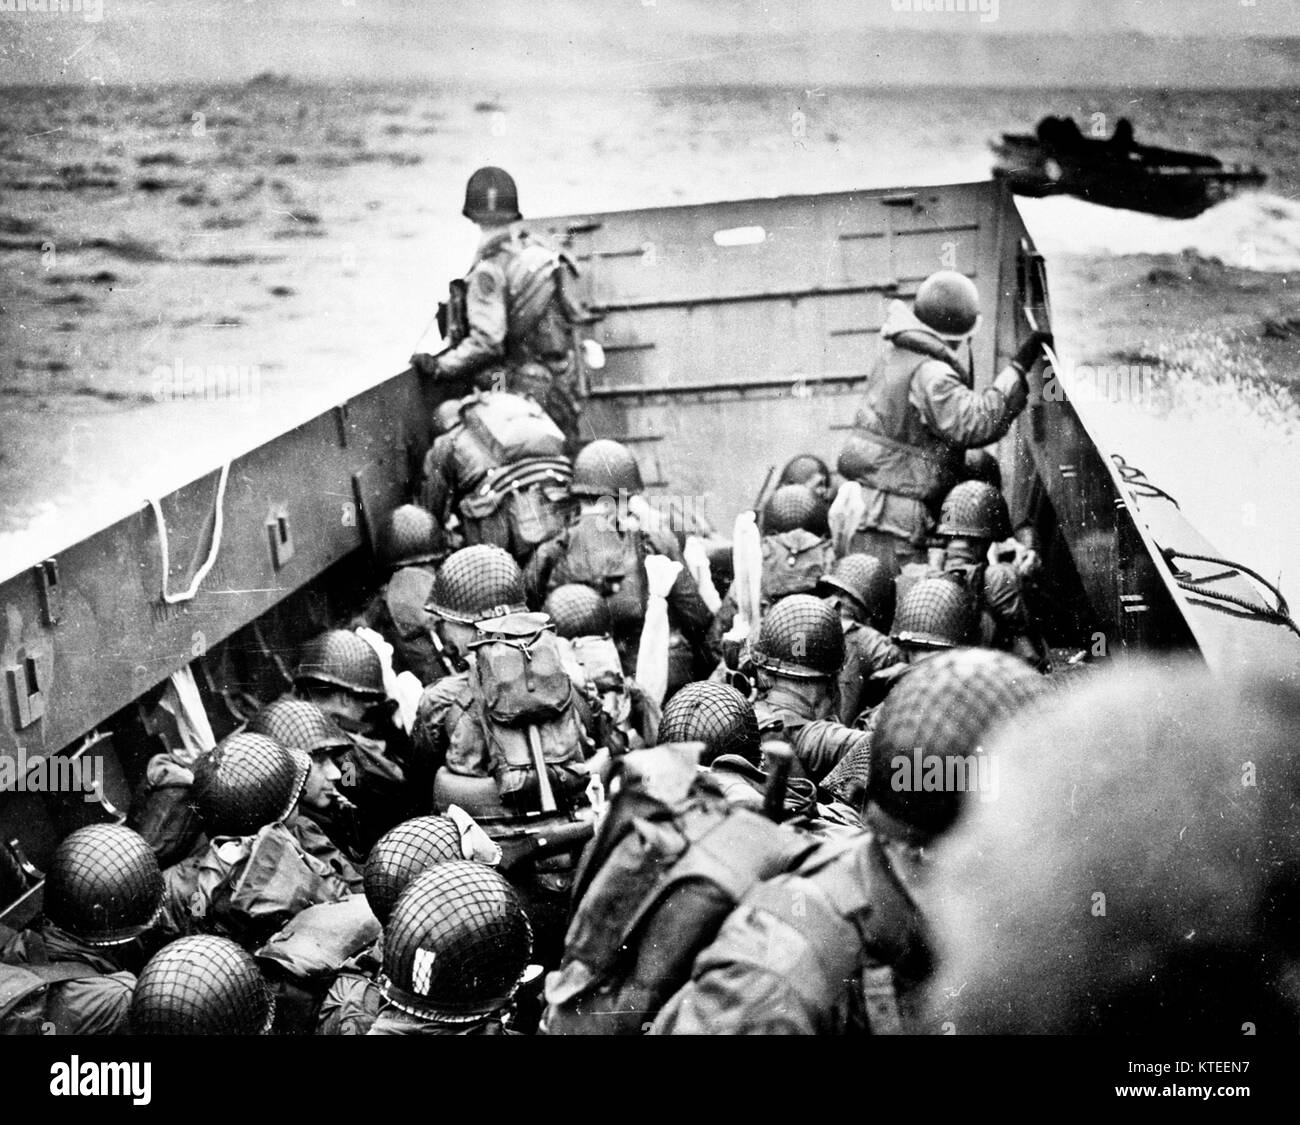 Normandy Invasion, June 1944 - Troops crouch inside a LCVP landing craft, just before landing on Omaha Beach on - Stock Image